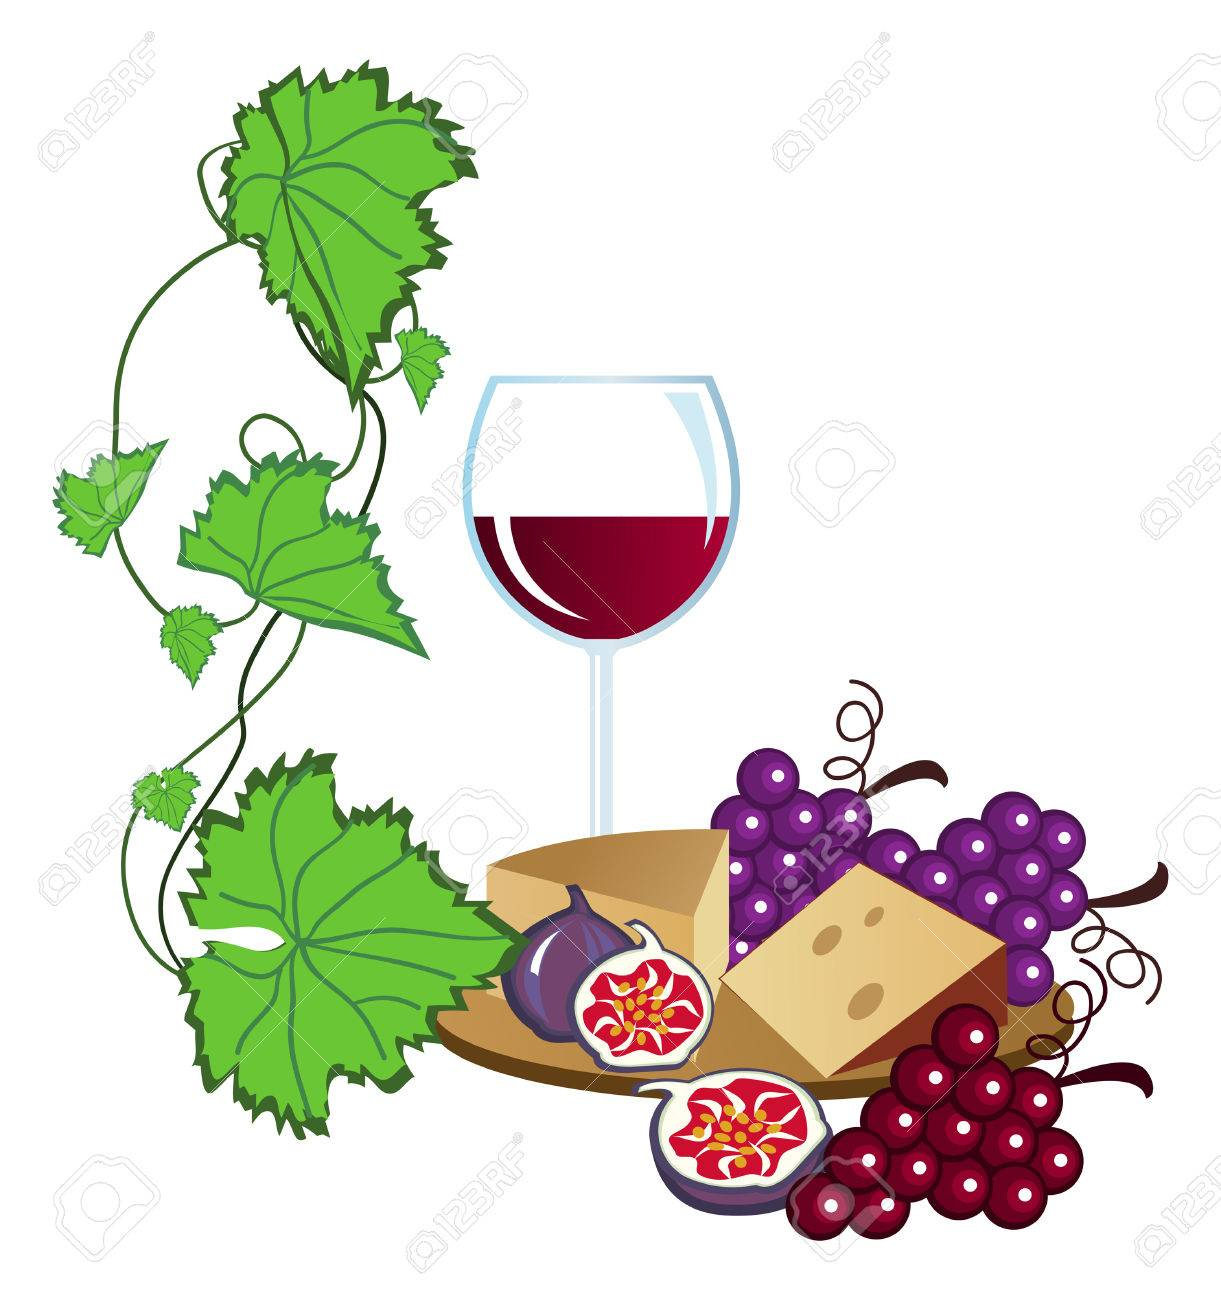 clip arts of wine fruits and cheese royalty free cliparts vectors rh 123rf com  french wine and cheese clipart